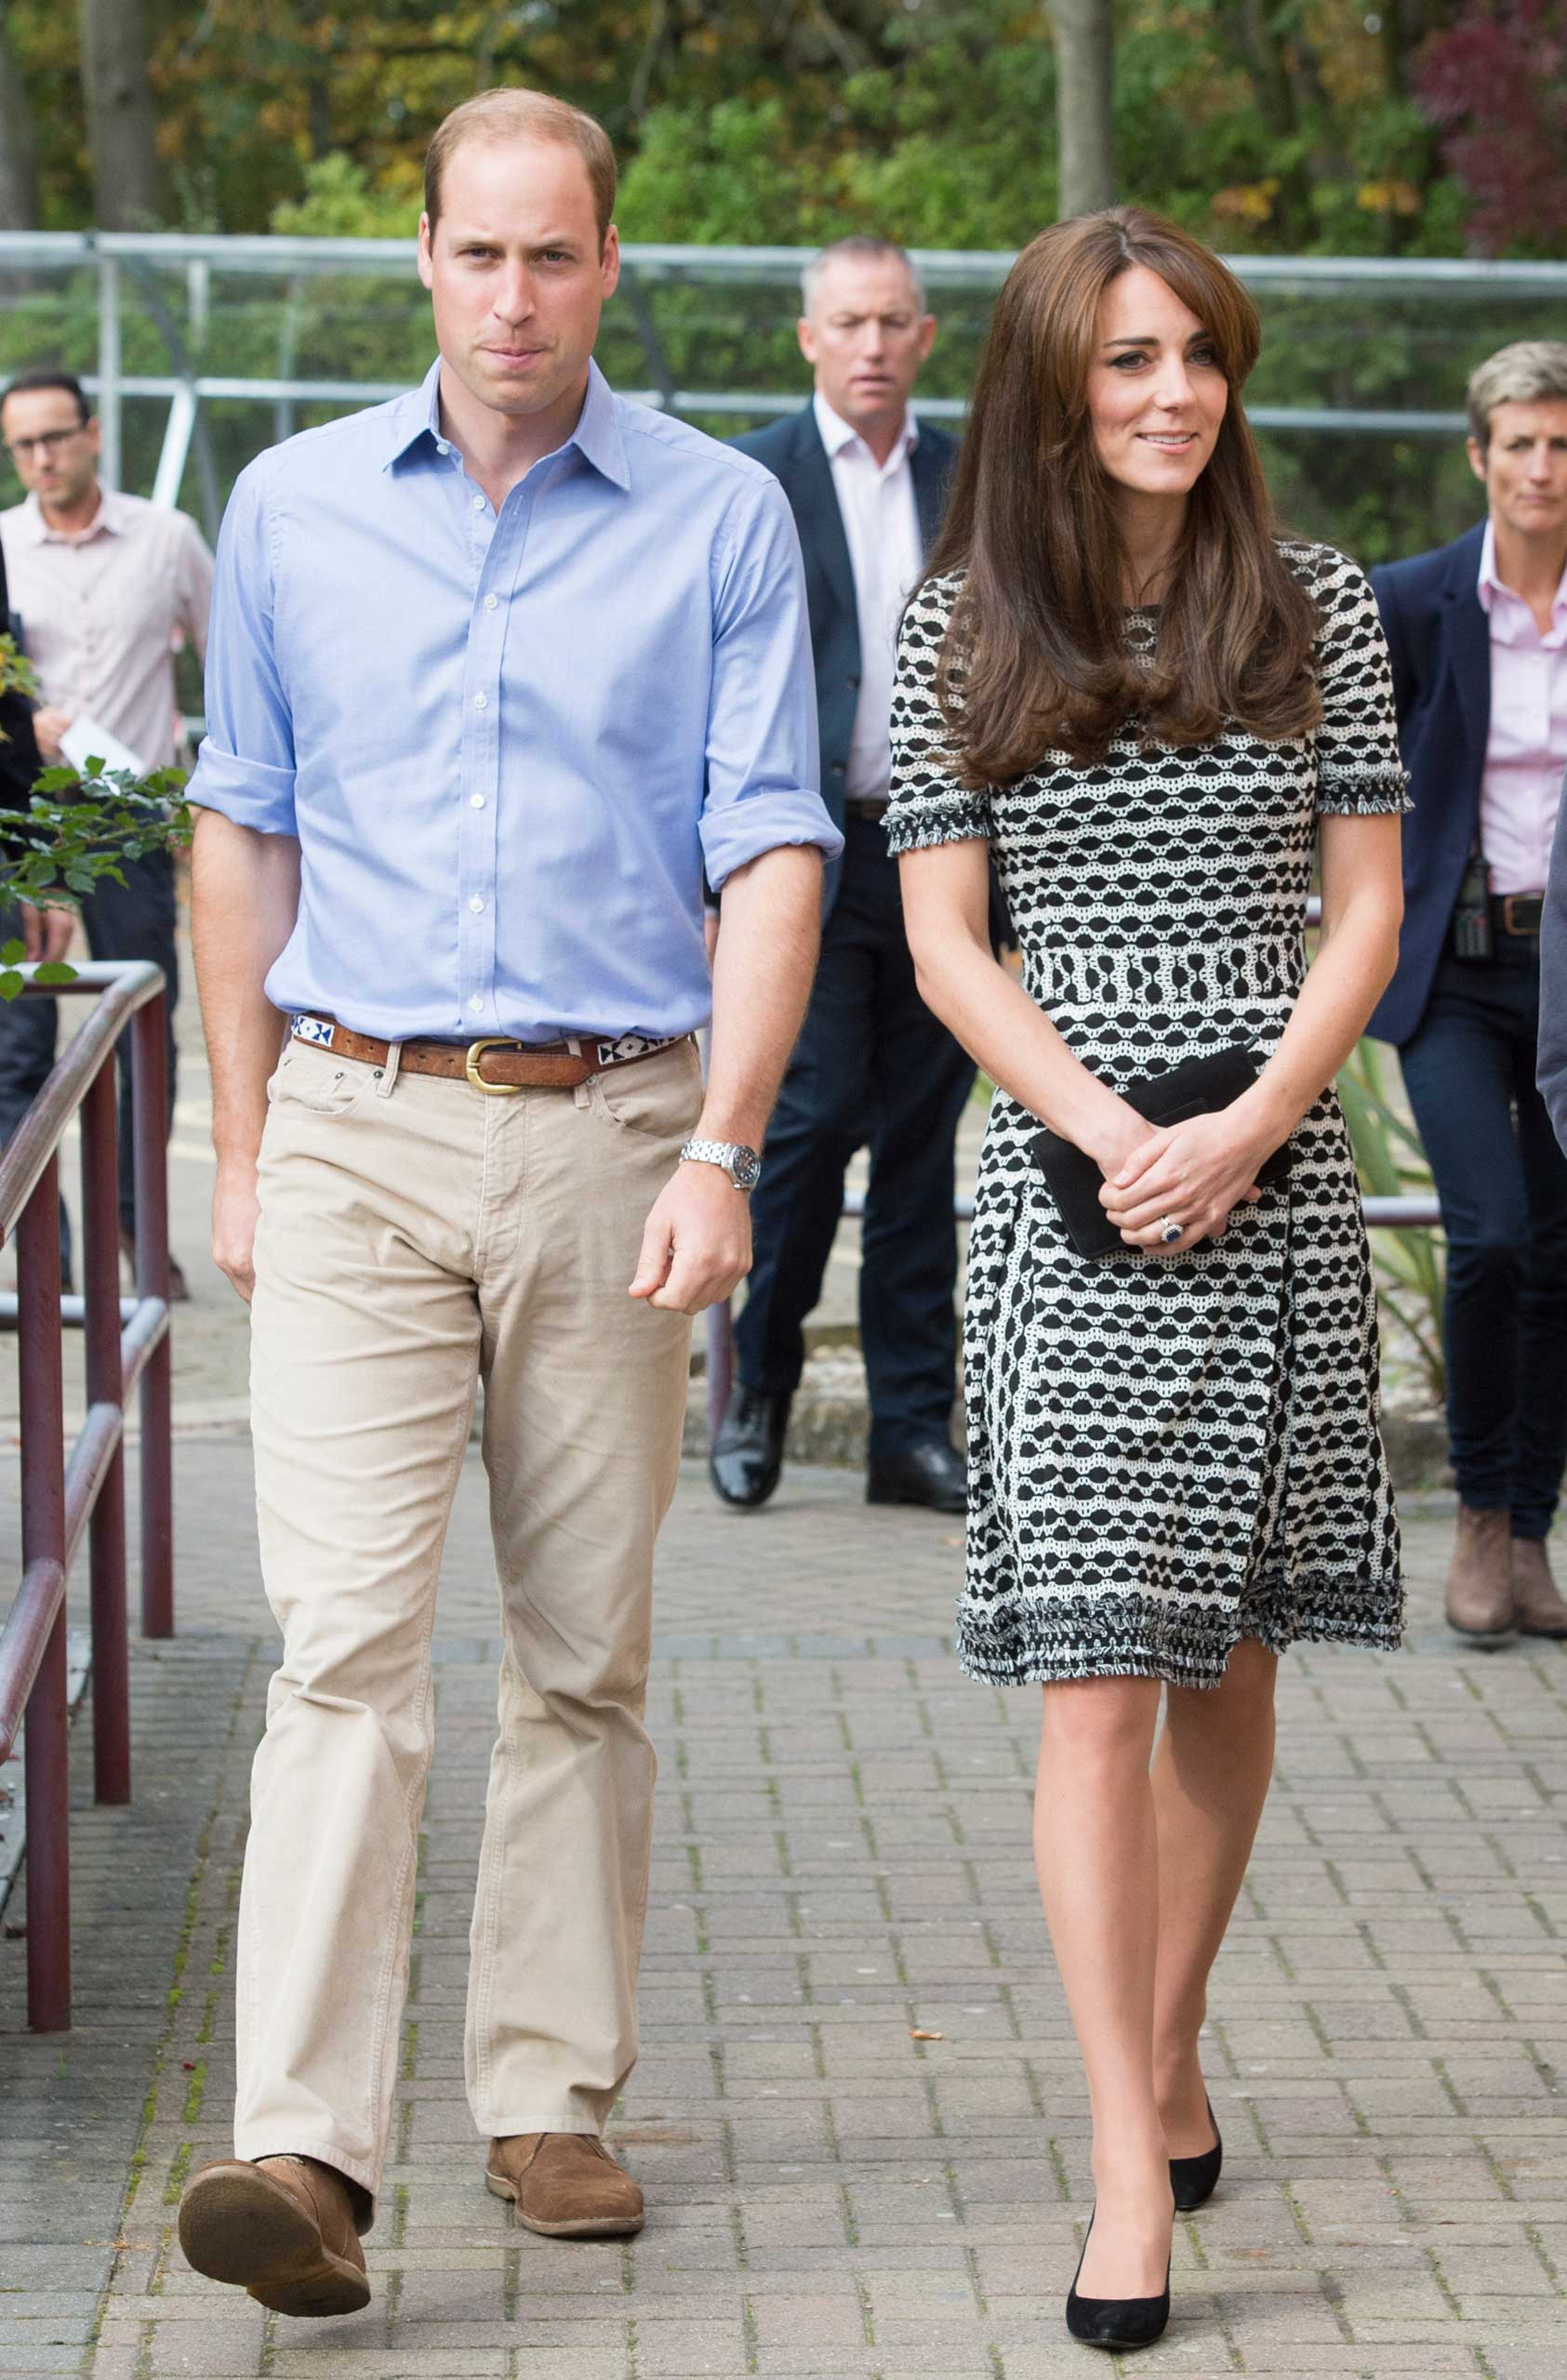 Royal visit to Harrow College, Oct. 10, 2015.